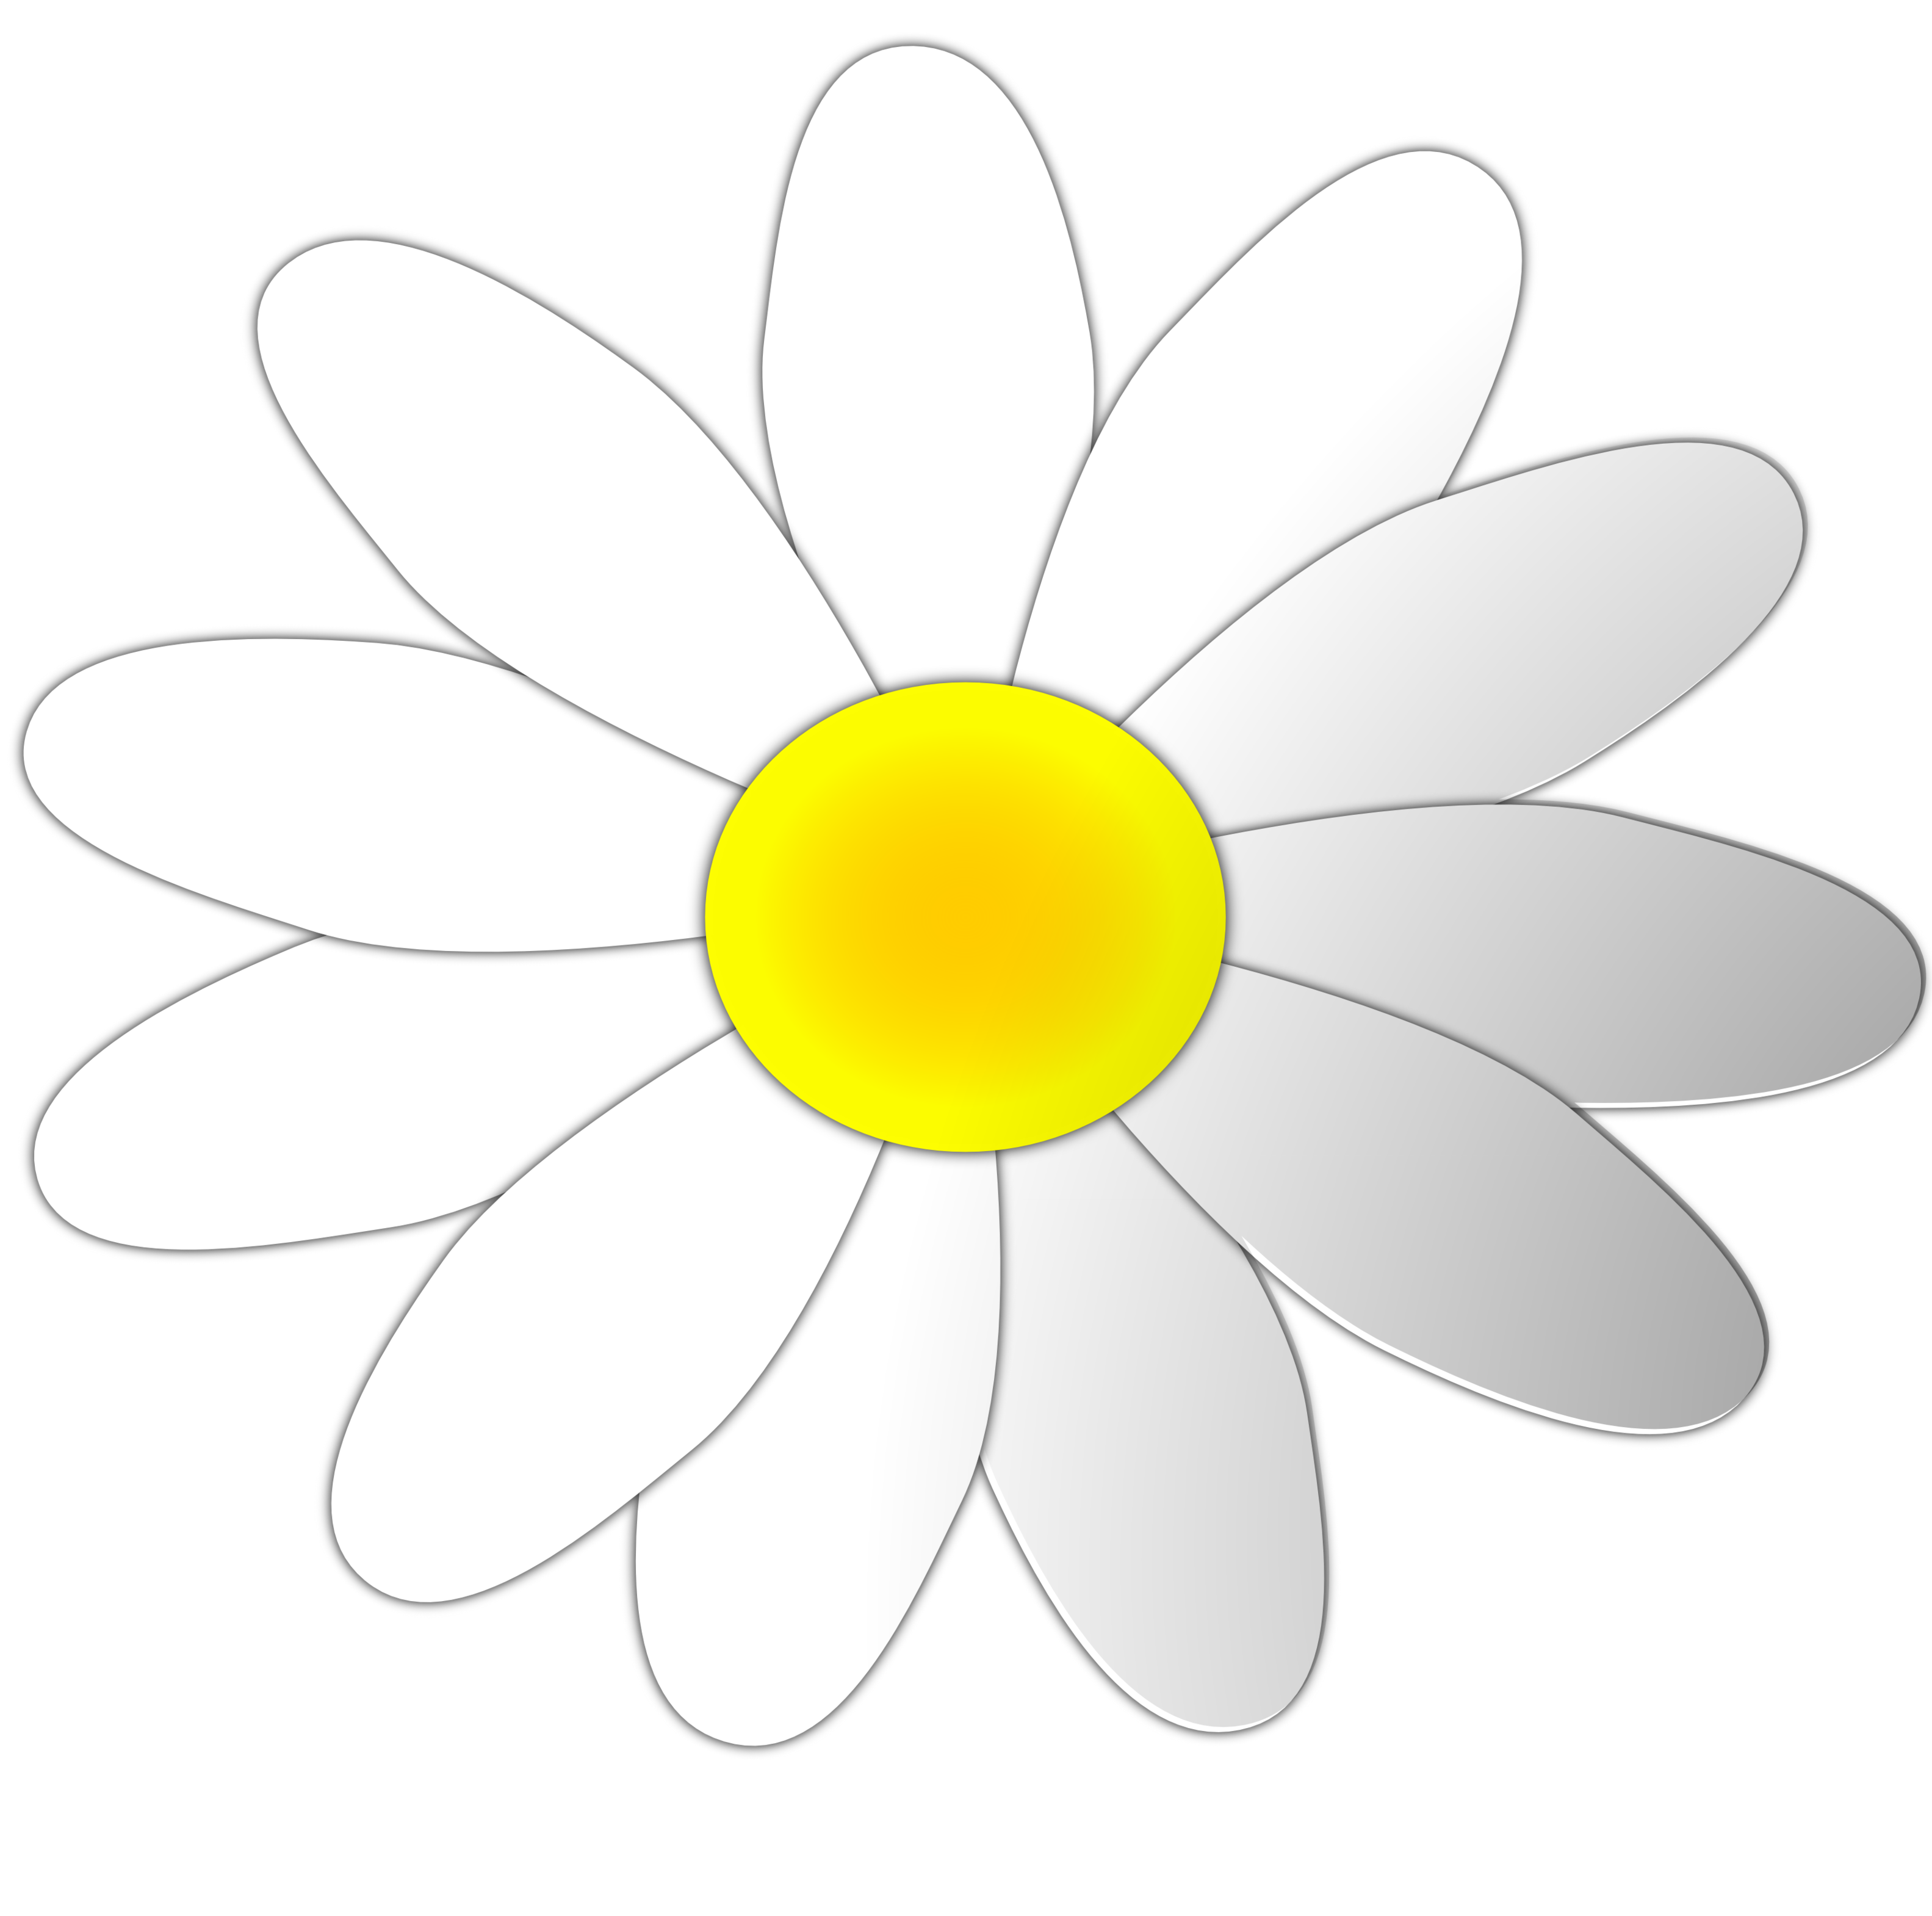 Free Daisy Flower Cliparts, Download Free Clip Art, Free